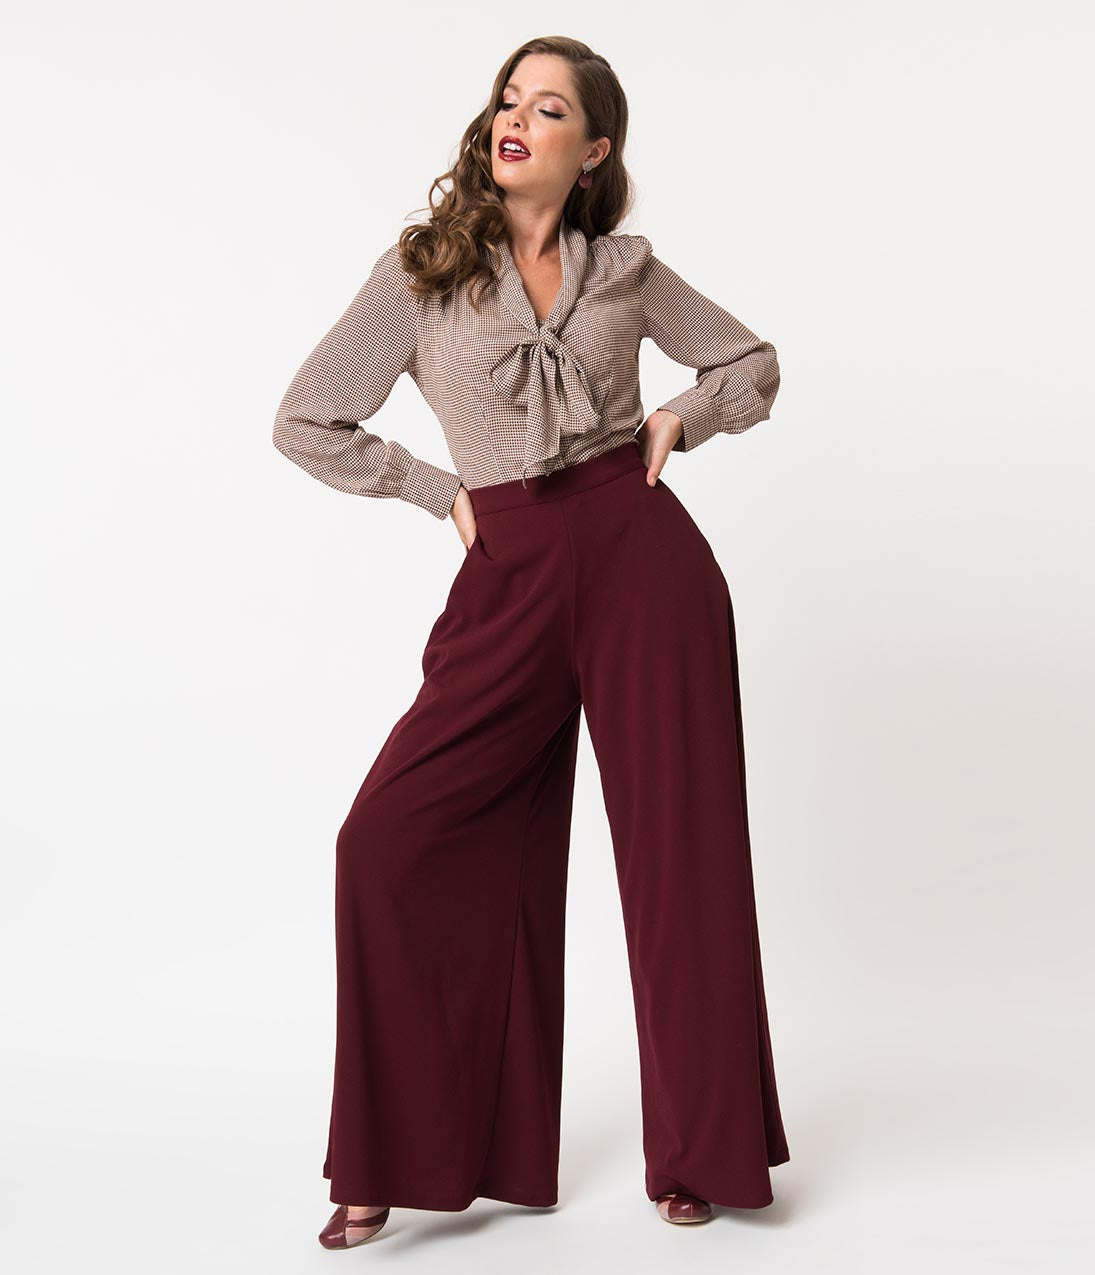 1940s Swing Pants & Sailor Trousers- Wide Leg, High Waist La Femme En Noir Oxblood Red Widow High Waisted Wide Leg Palazzo Pants $122.00 AT vintagedancer.com